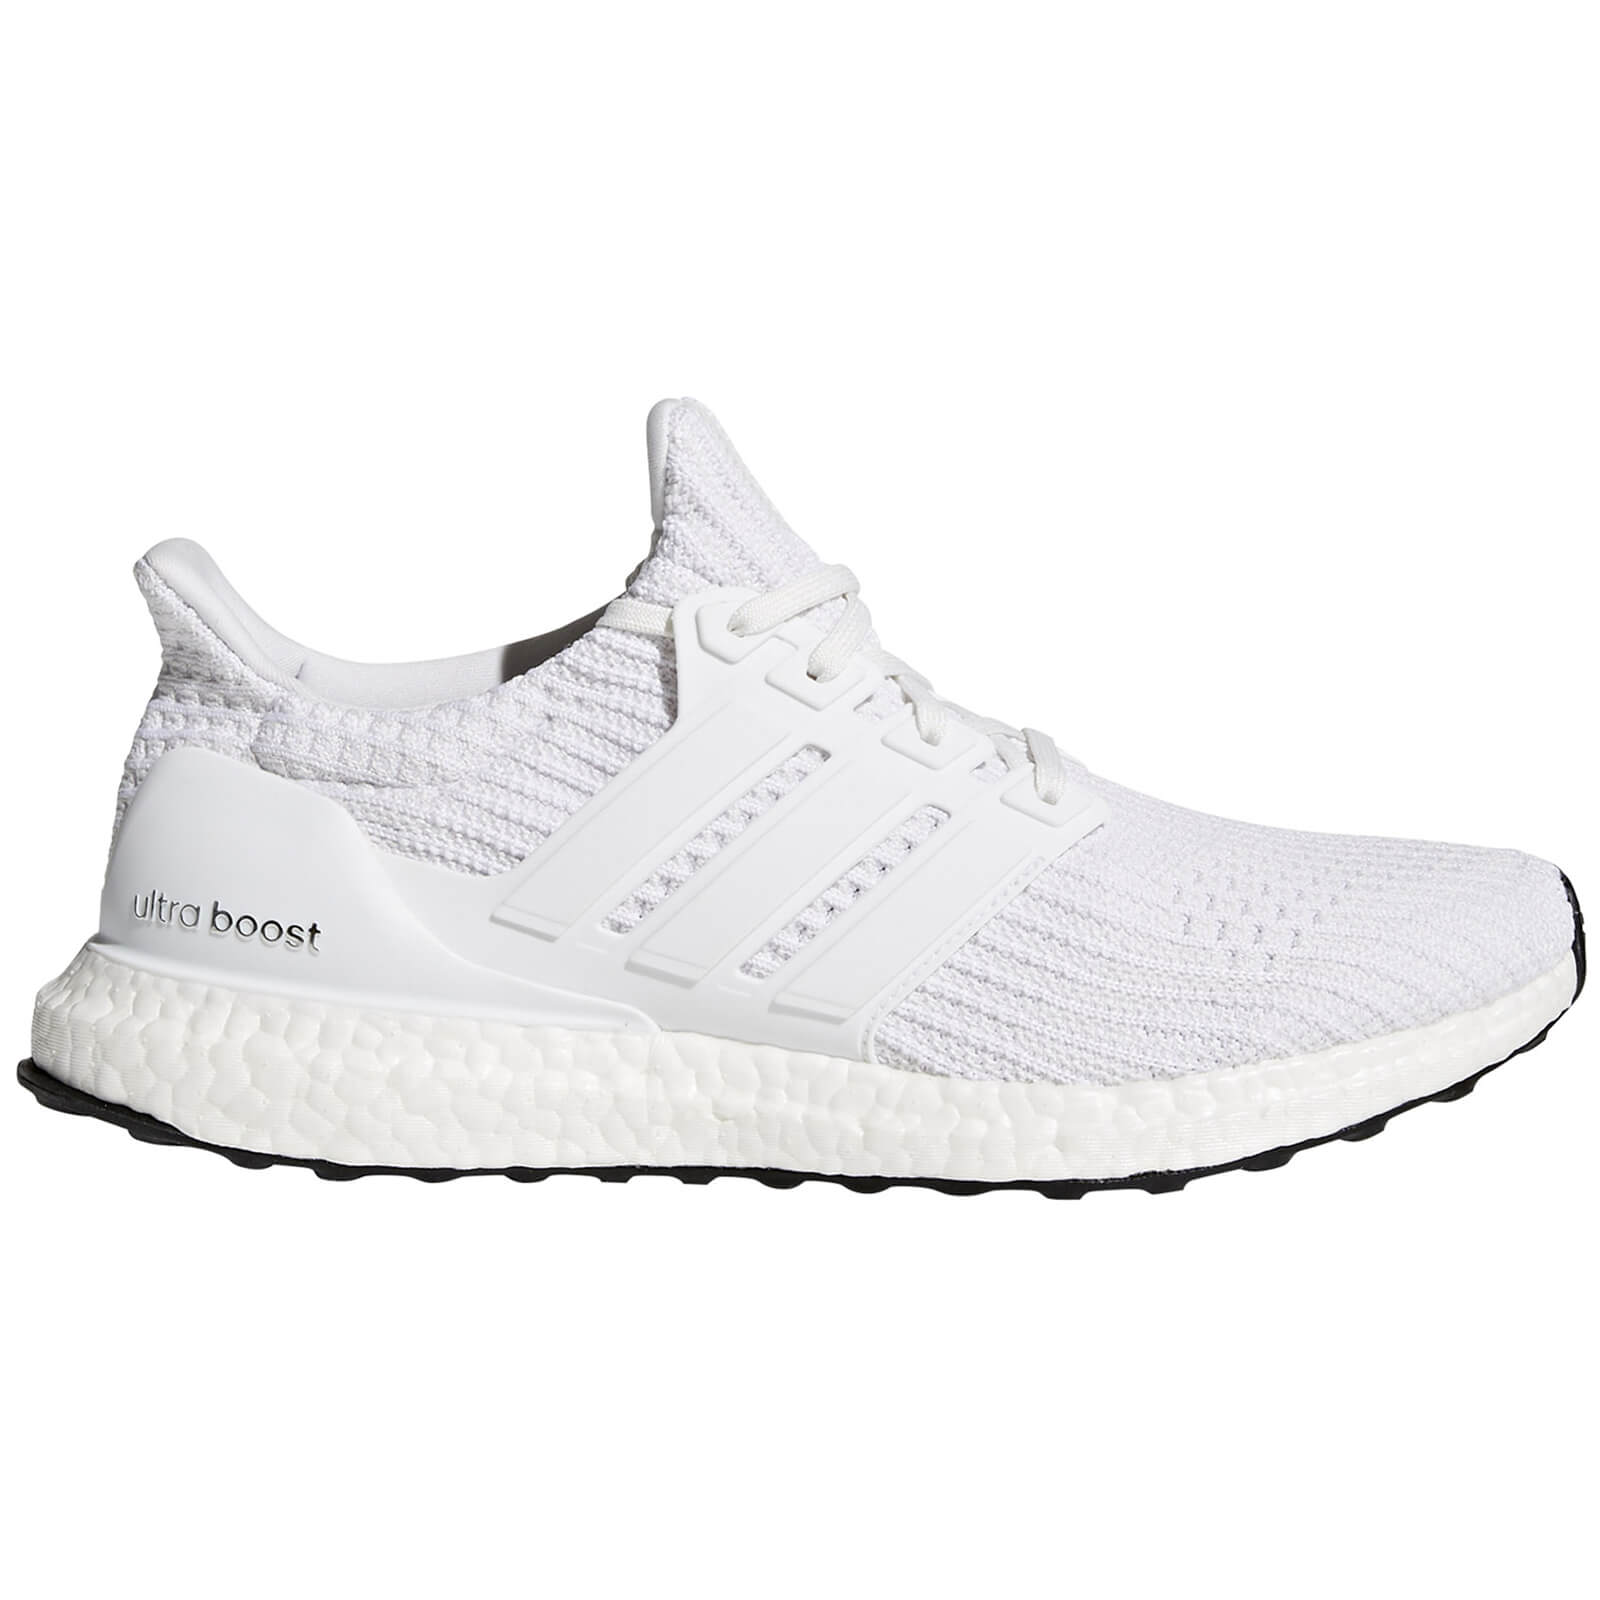 8284ccab631c9 adidas Ultra Boost Running Shoes - White